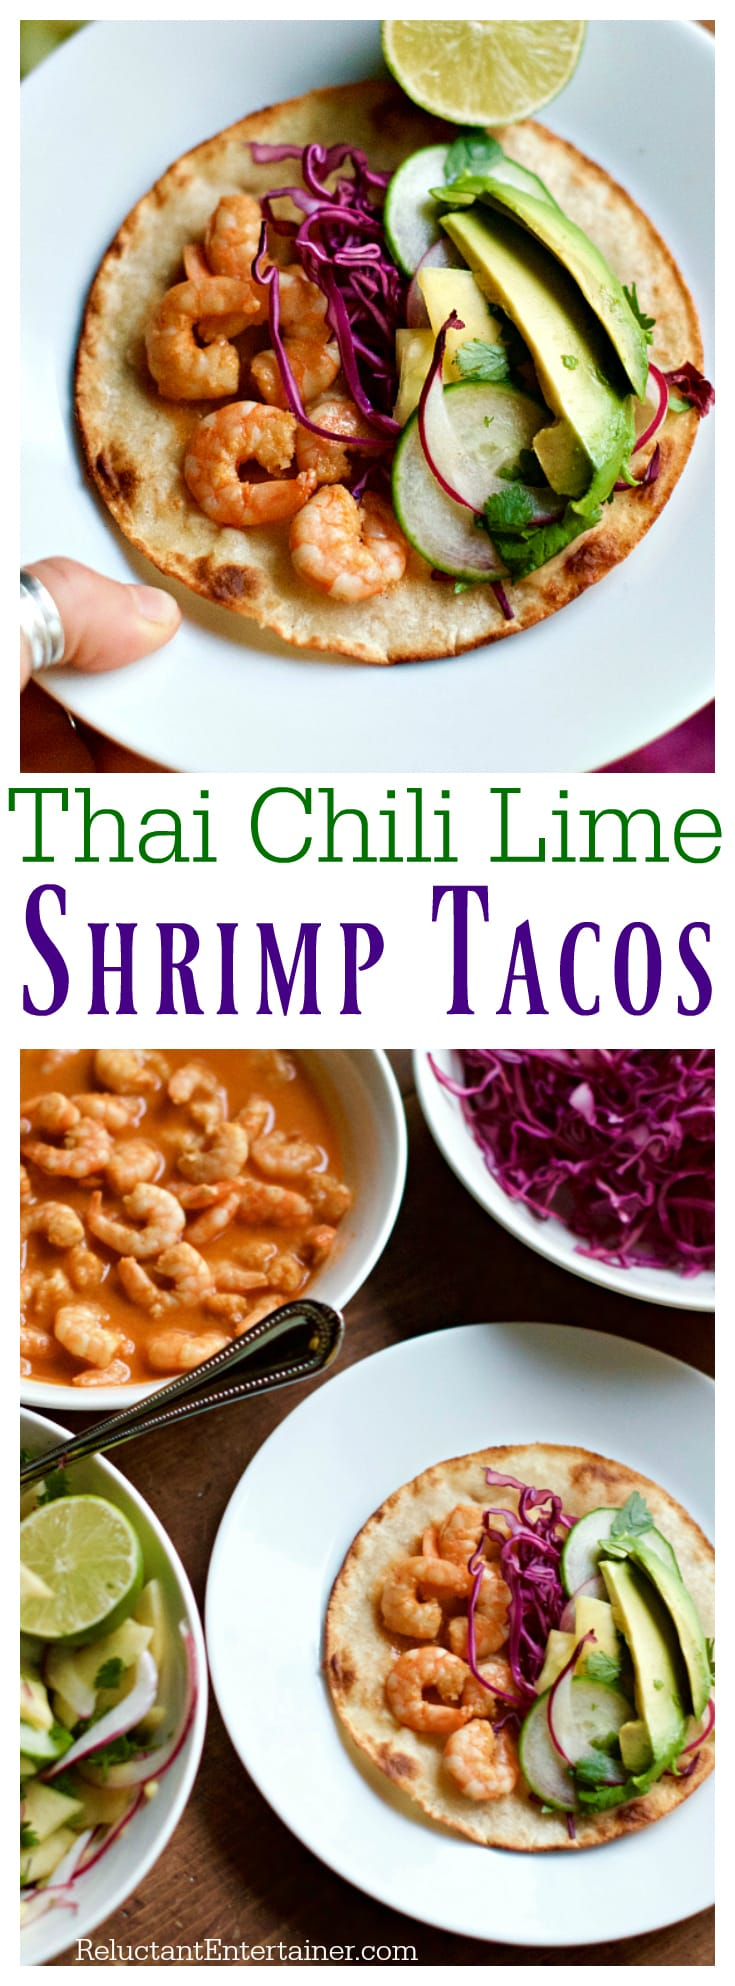 Thai Chili Lime Shrimp Tacos